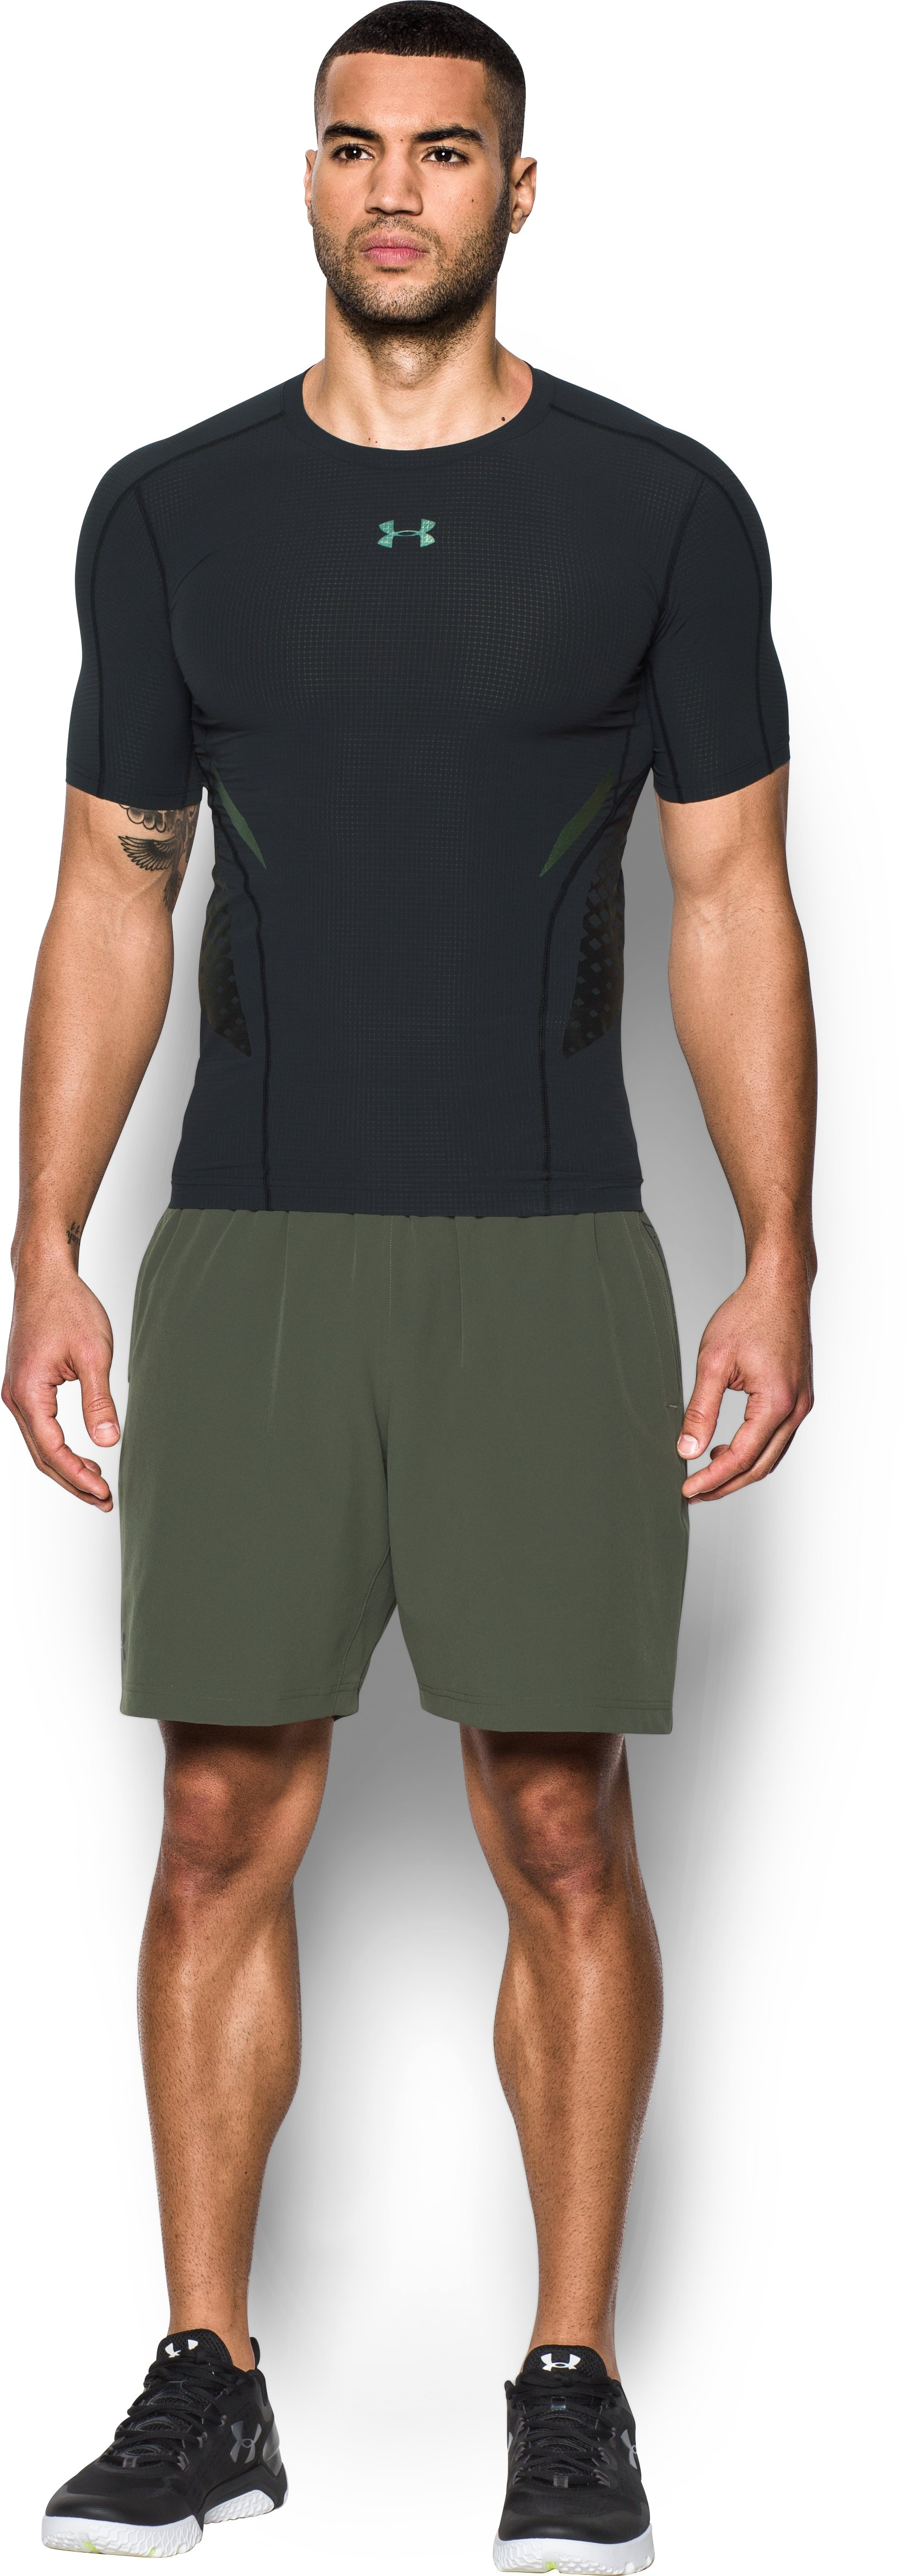 Men's HeatGear® Armour Zone Compression Short Sleeve, Black